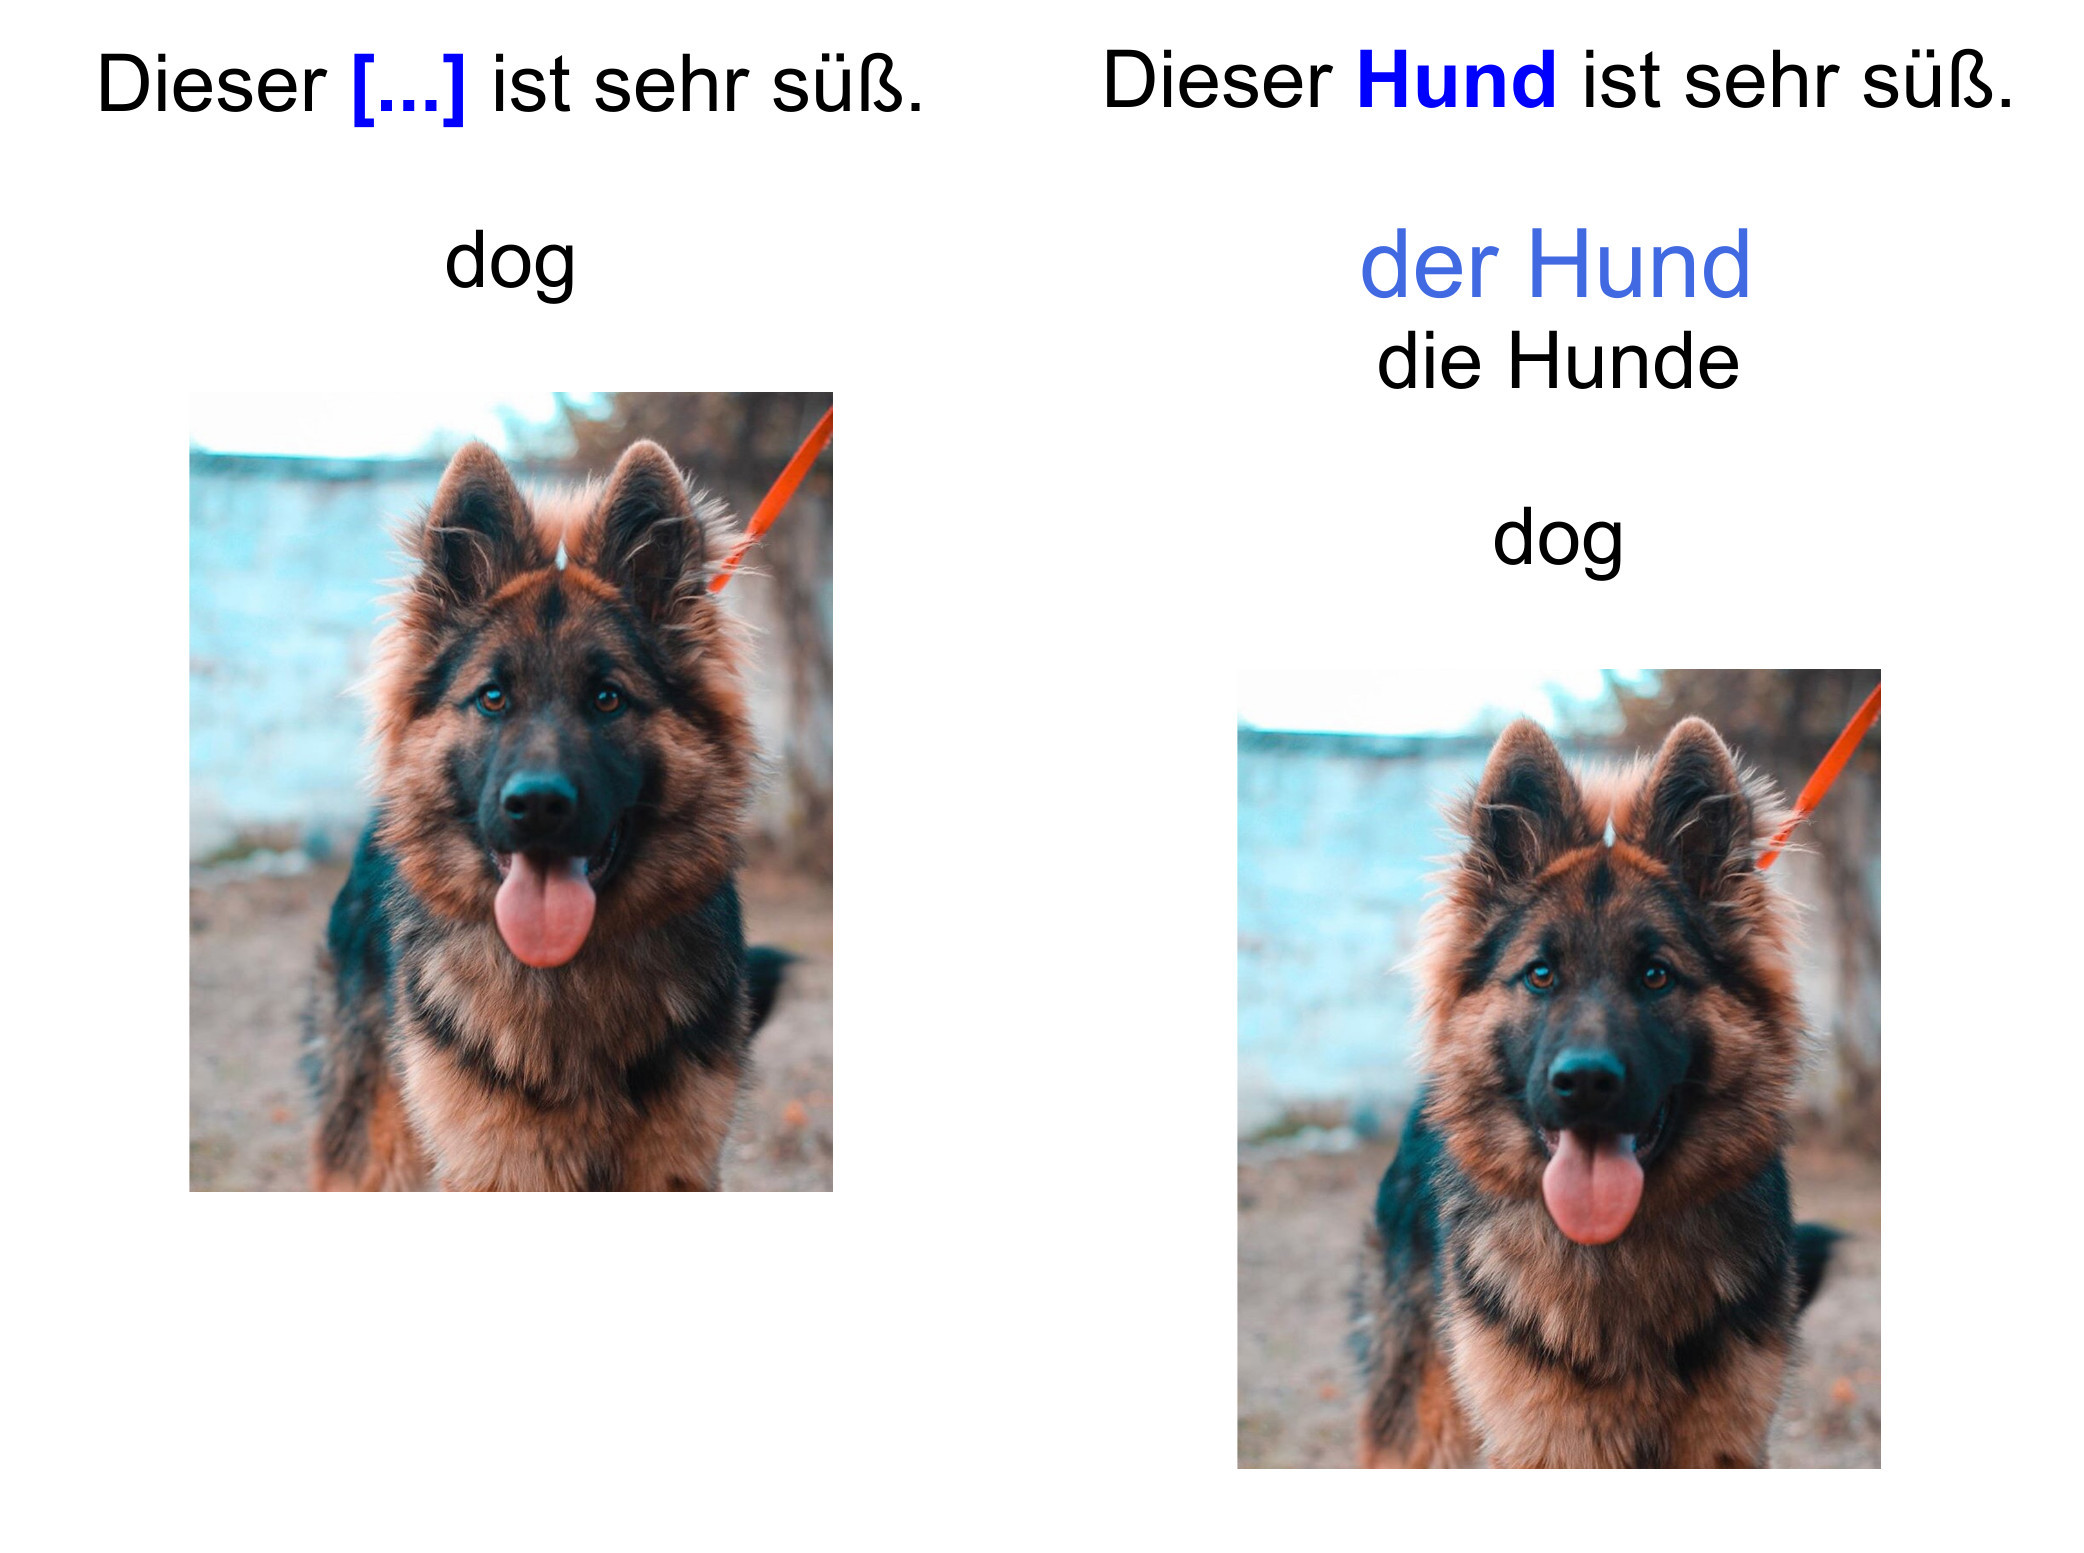 A German flashcard with automatically-generated cloze deletion.